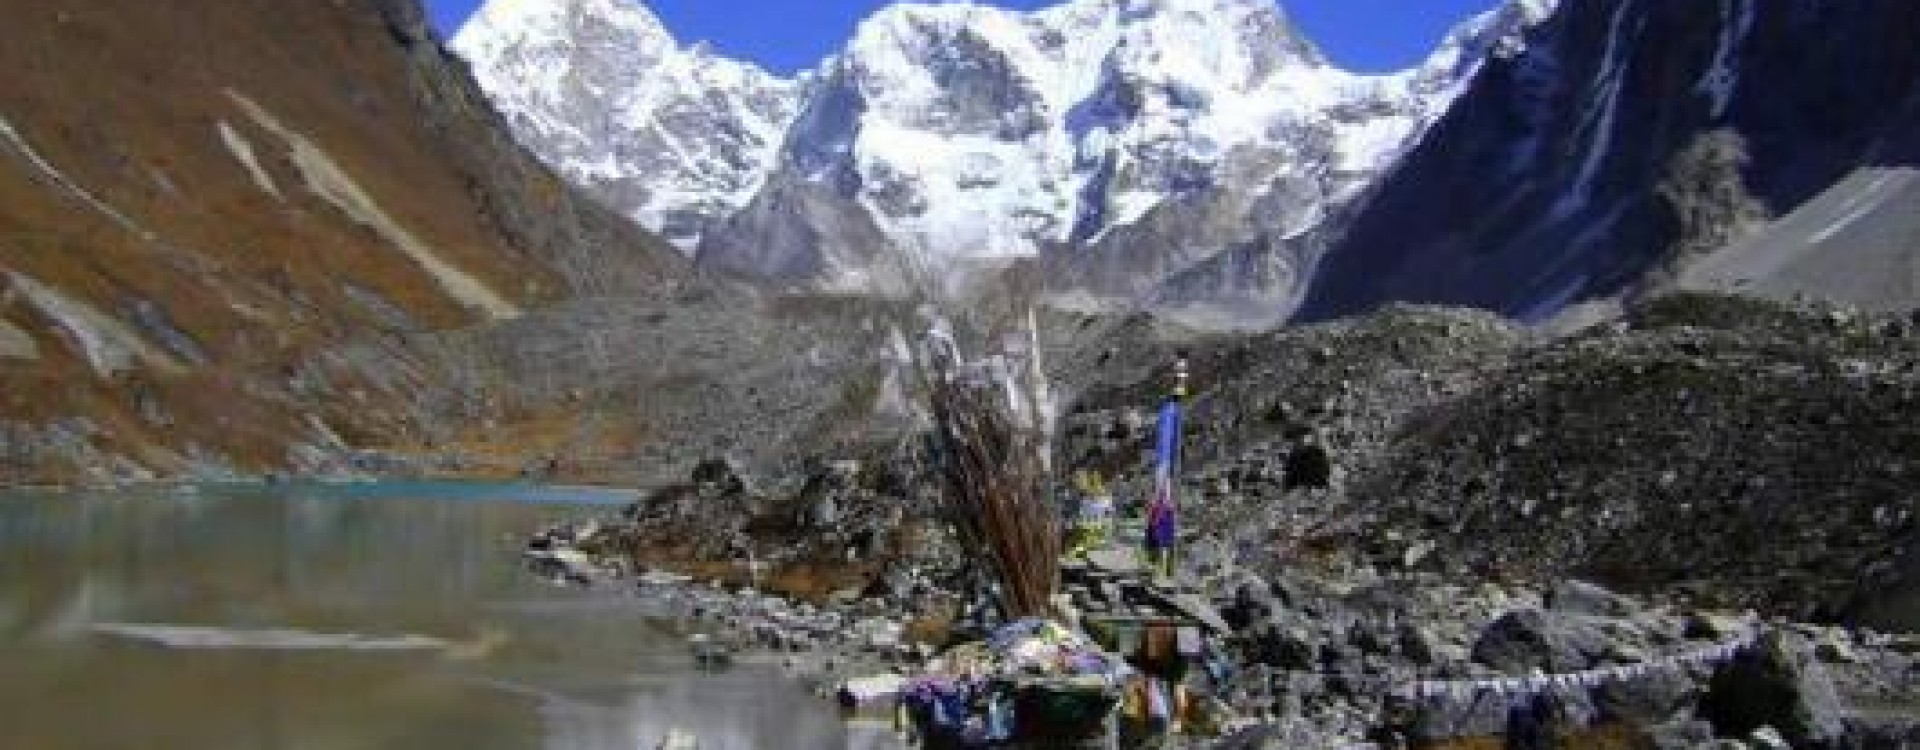 Secrets of the Solu Khumbu trekking holiday